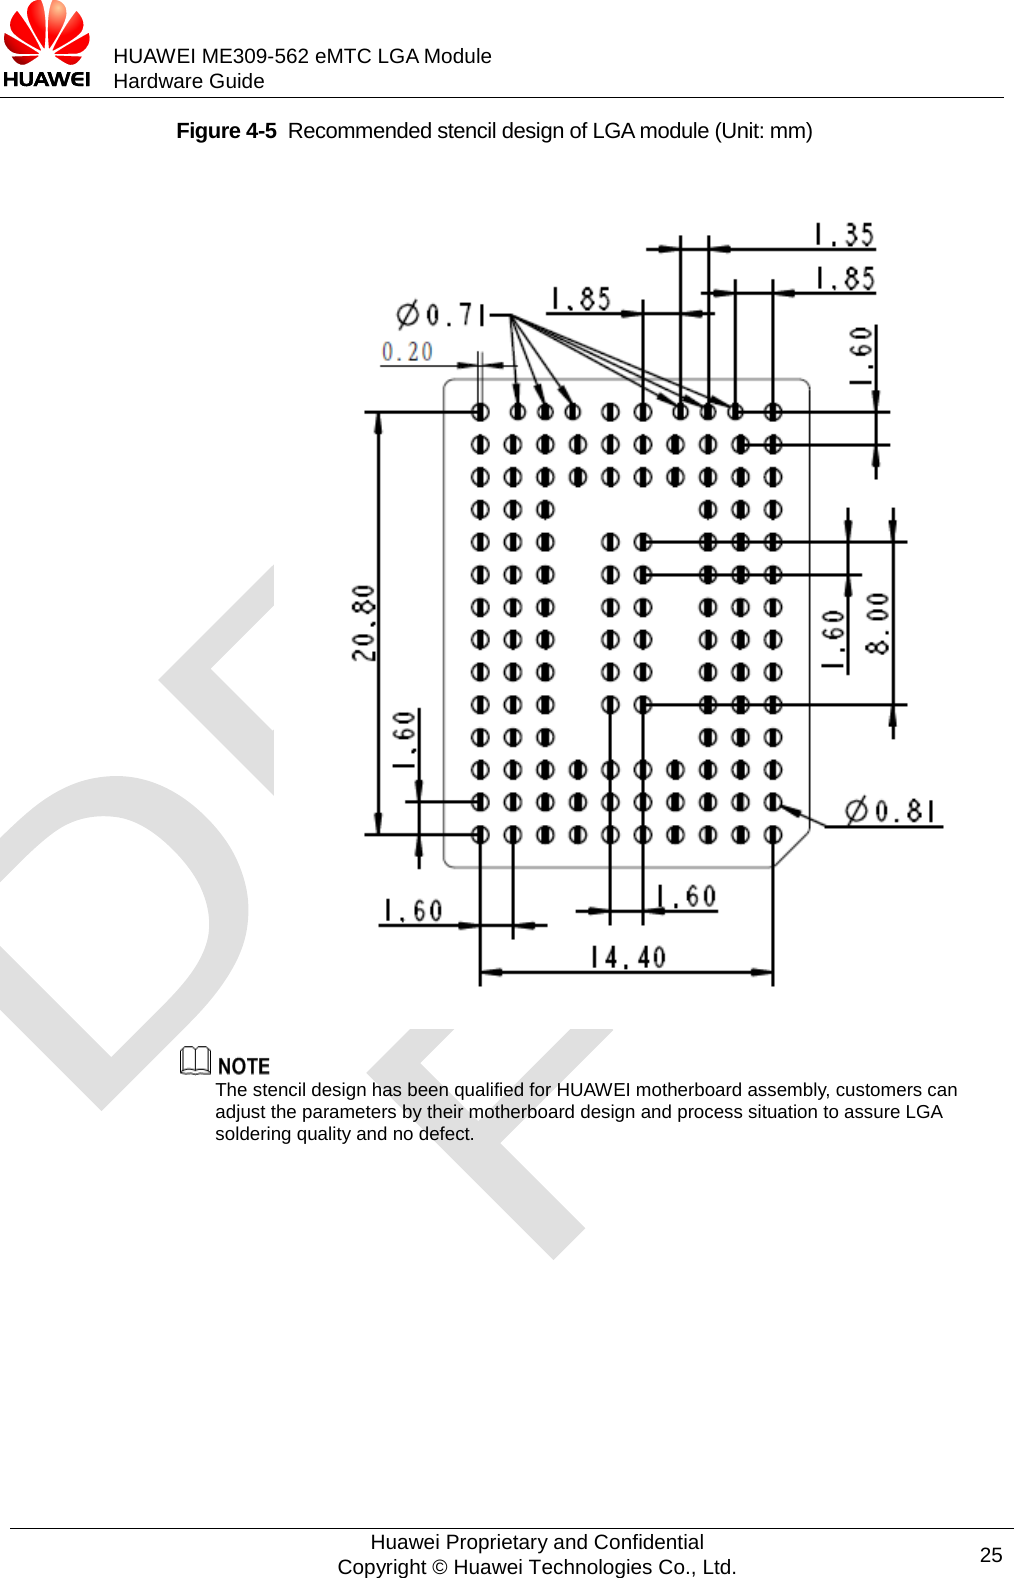 HUAWEI ME309-562 eMTC LGA Module Hardware Guide  Figure 4-5  Recommended stencil design of LGA module (Unit: mm)             The stencil design has been qualified for HUAWEI motherboard assembly, customers can adjust the parameters by their motherboard design and process situation to assure LGA soldering quality and no defect.  Huawei Proprietary and Confidential Copyright © Huawei Technologies Co., Ltd. 25